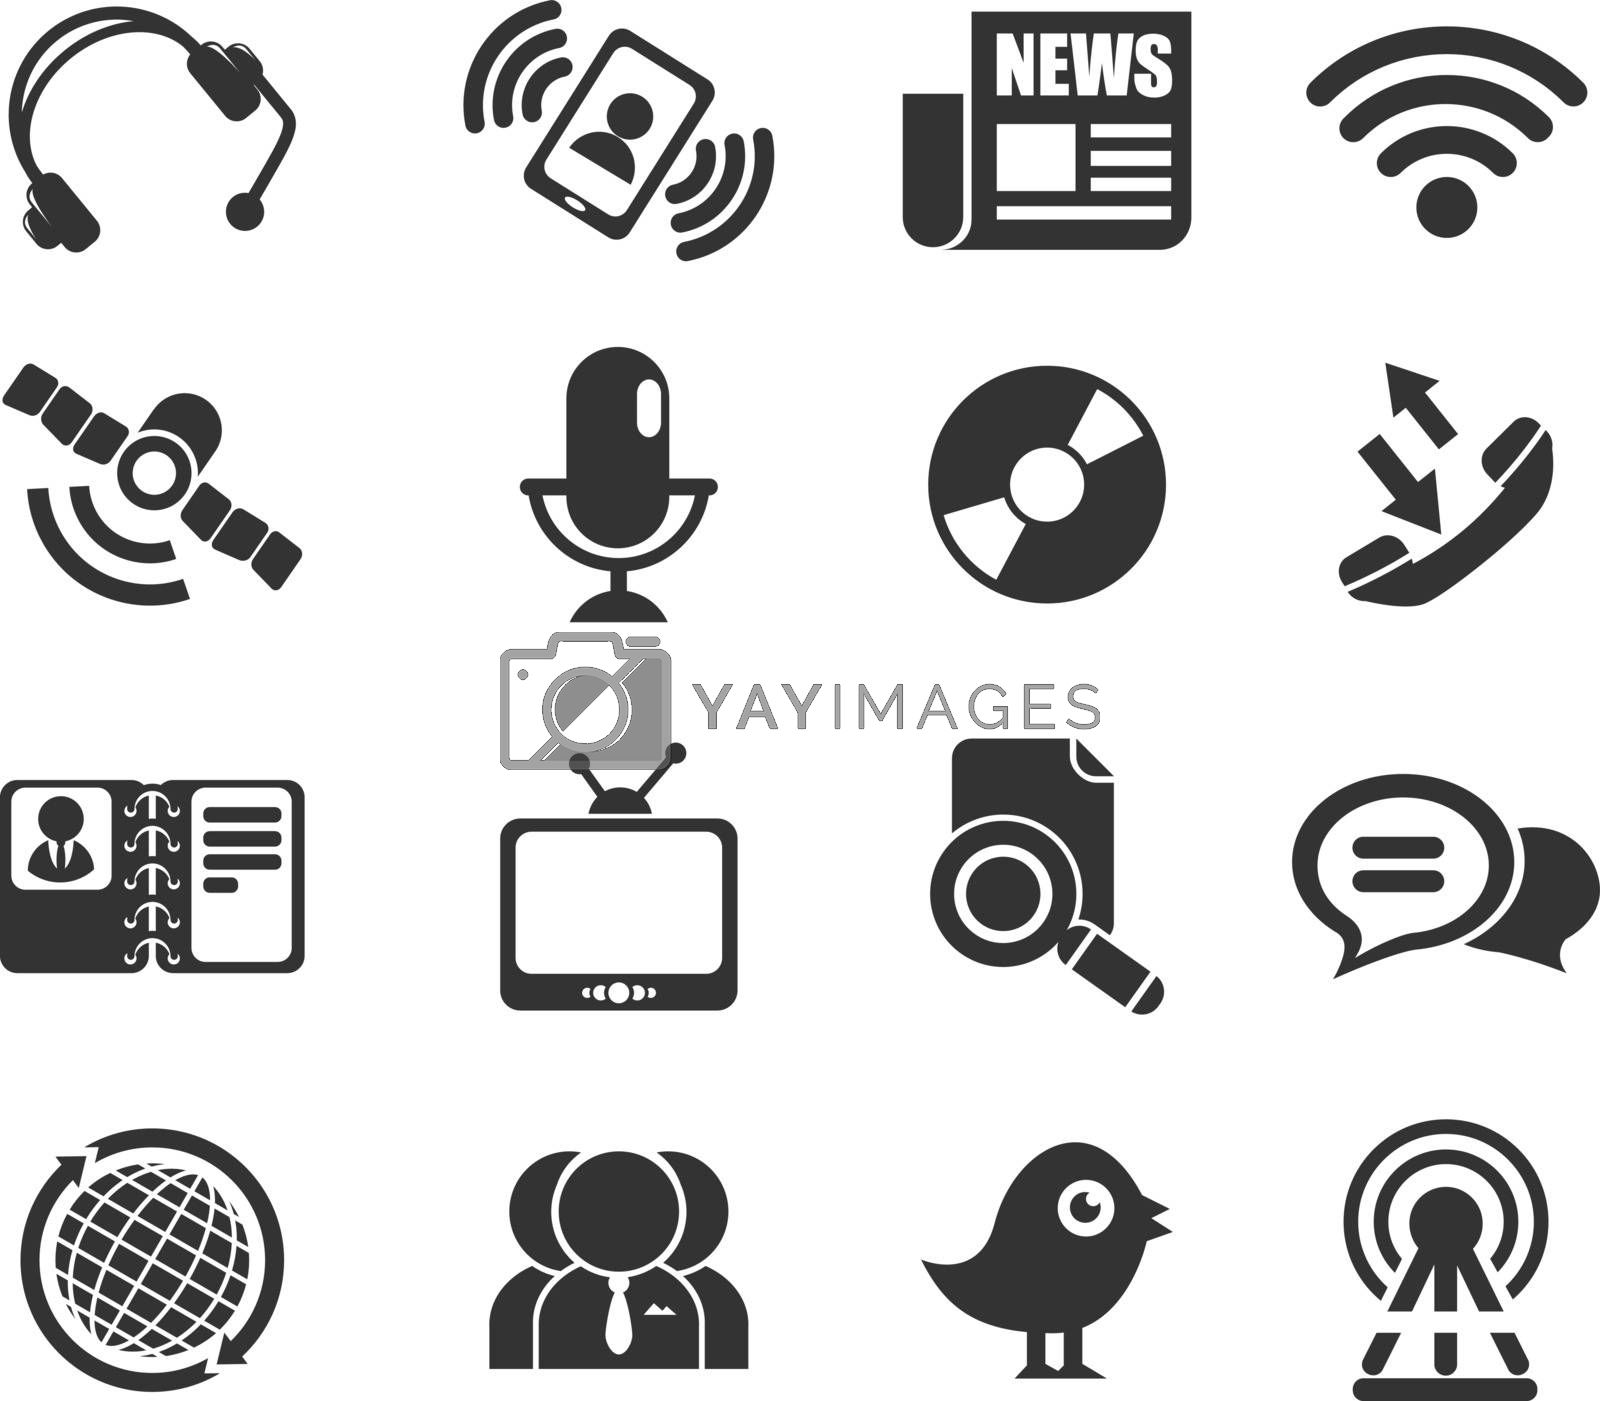 Communication icons for web icons and user interface